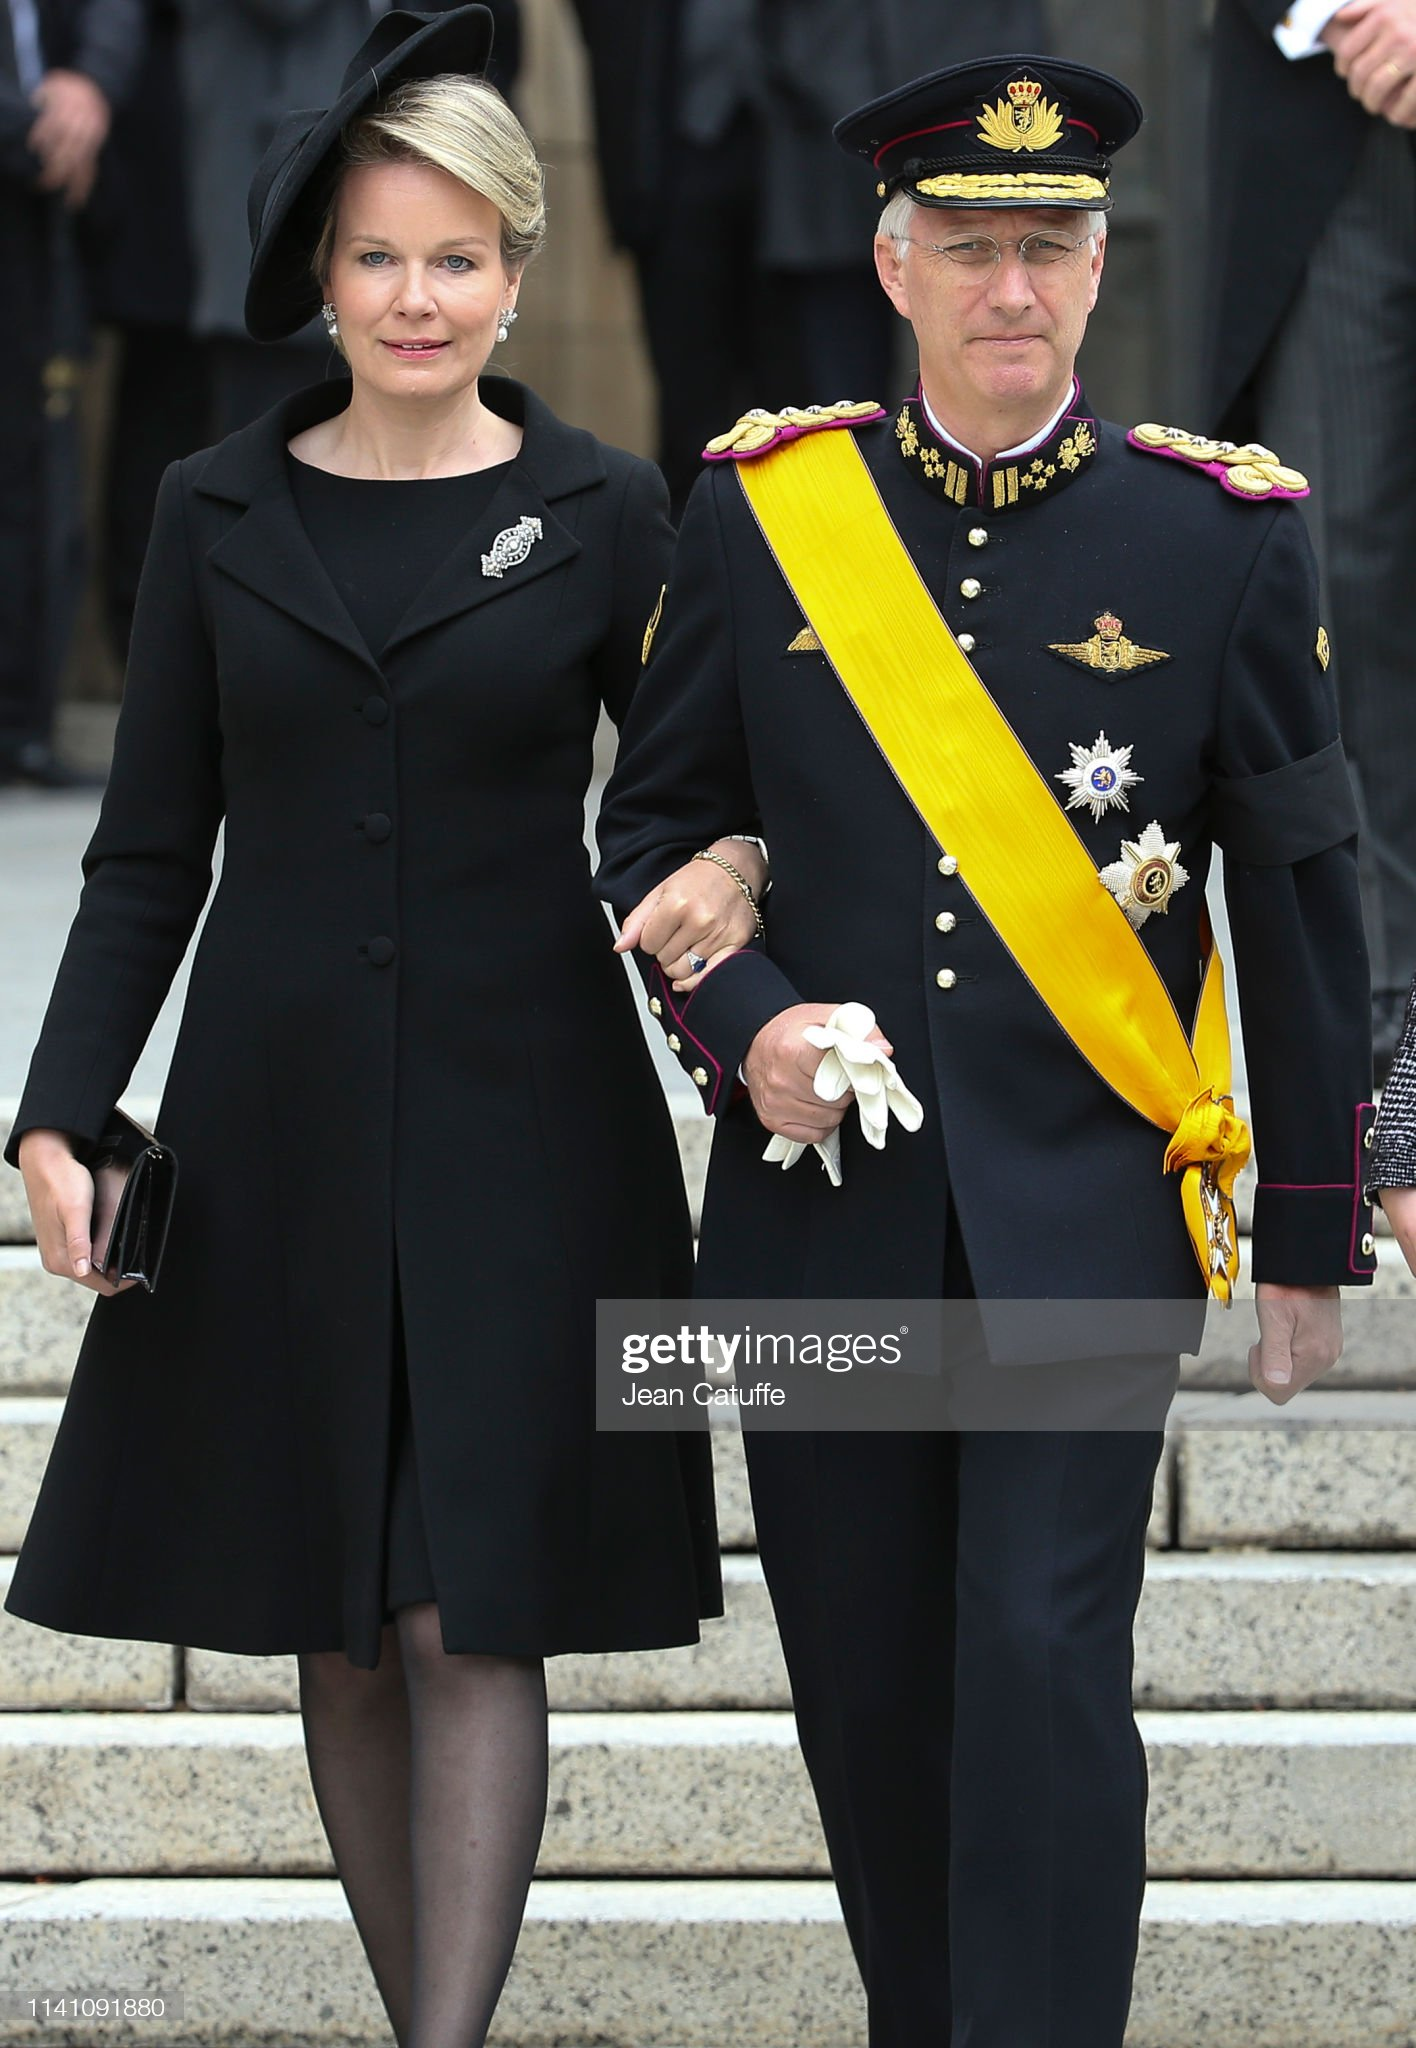 Похороны Великого Герцога Жана https://media.gettyimages.com/photos/king-philippe-of-belgium-and-queen-mathilde-of-belgium-leave-the-of-picture-id1141091880?s=2048x2048